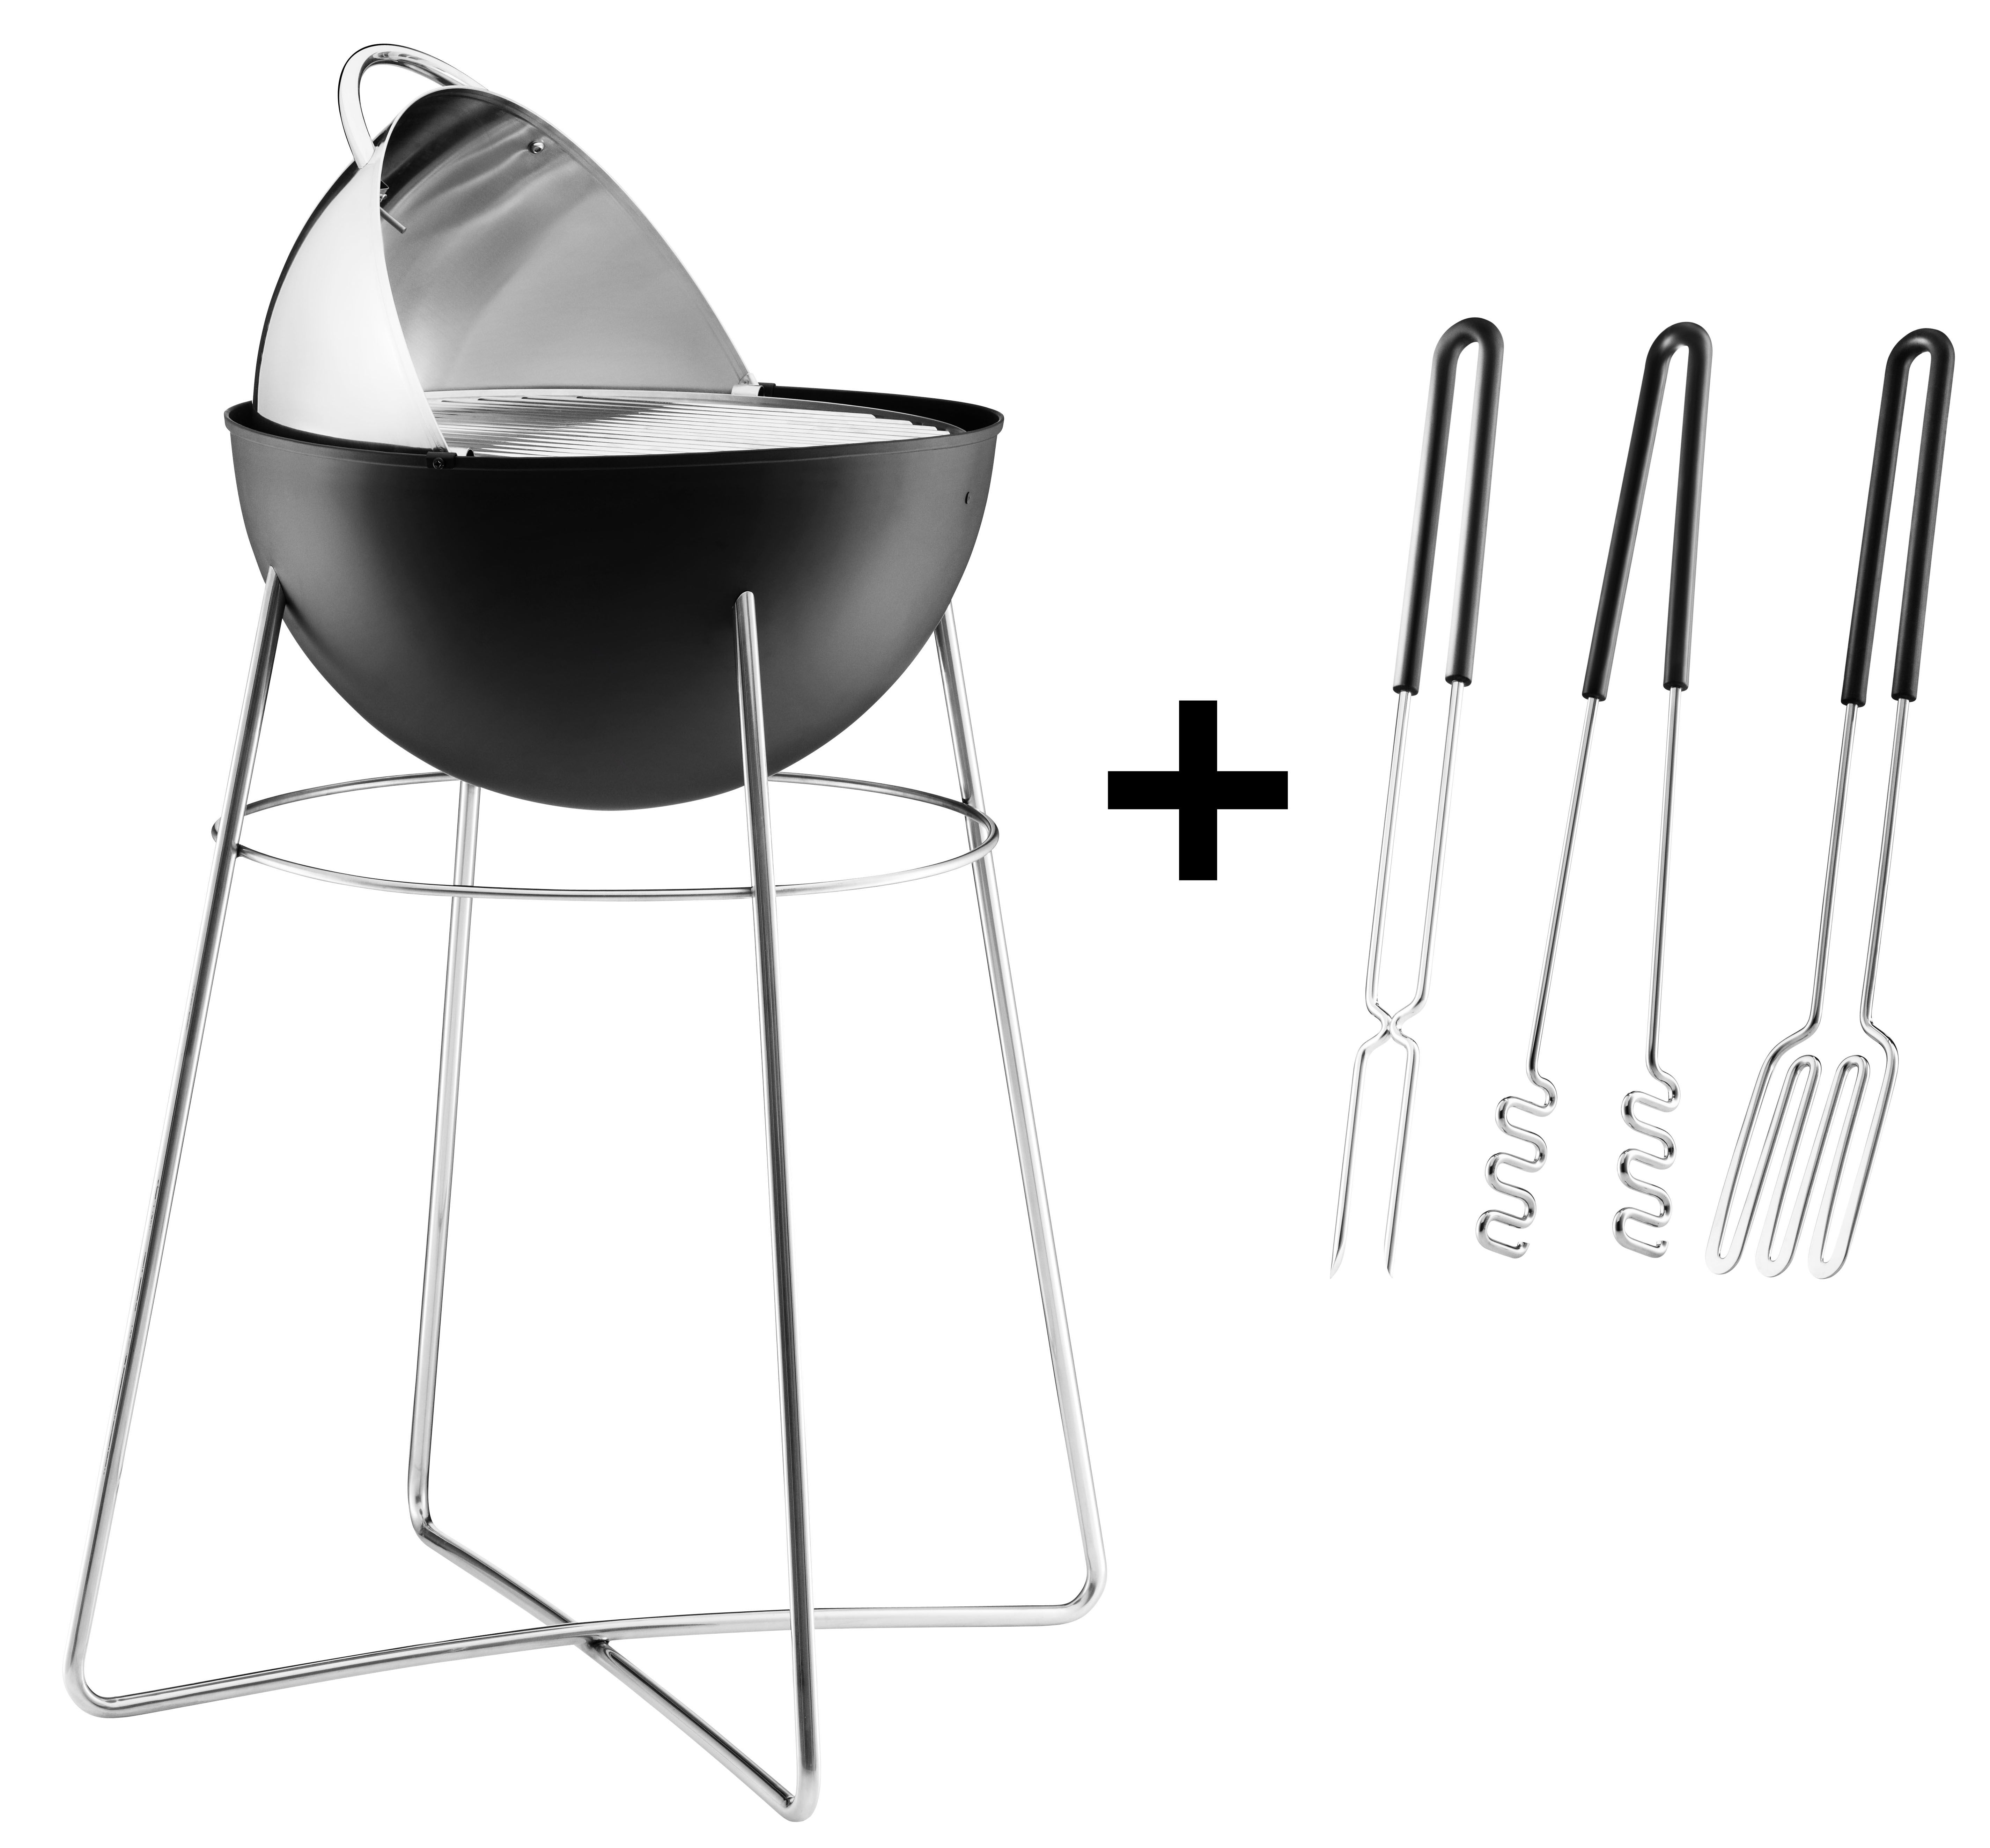 charcoal grill 3 free accessories grill 3 free accessories by eva solo. Black Bedroom Furniture Sets. Home Design Ideas